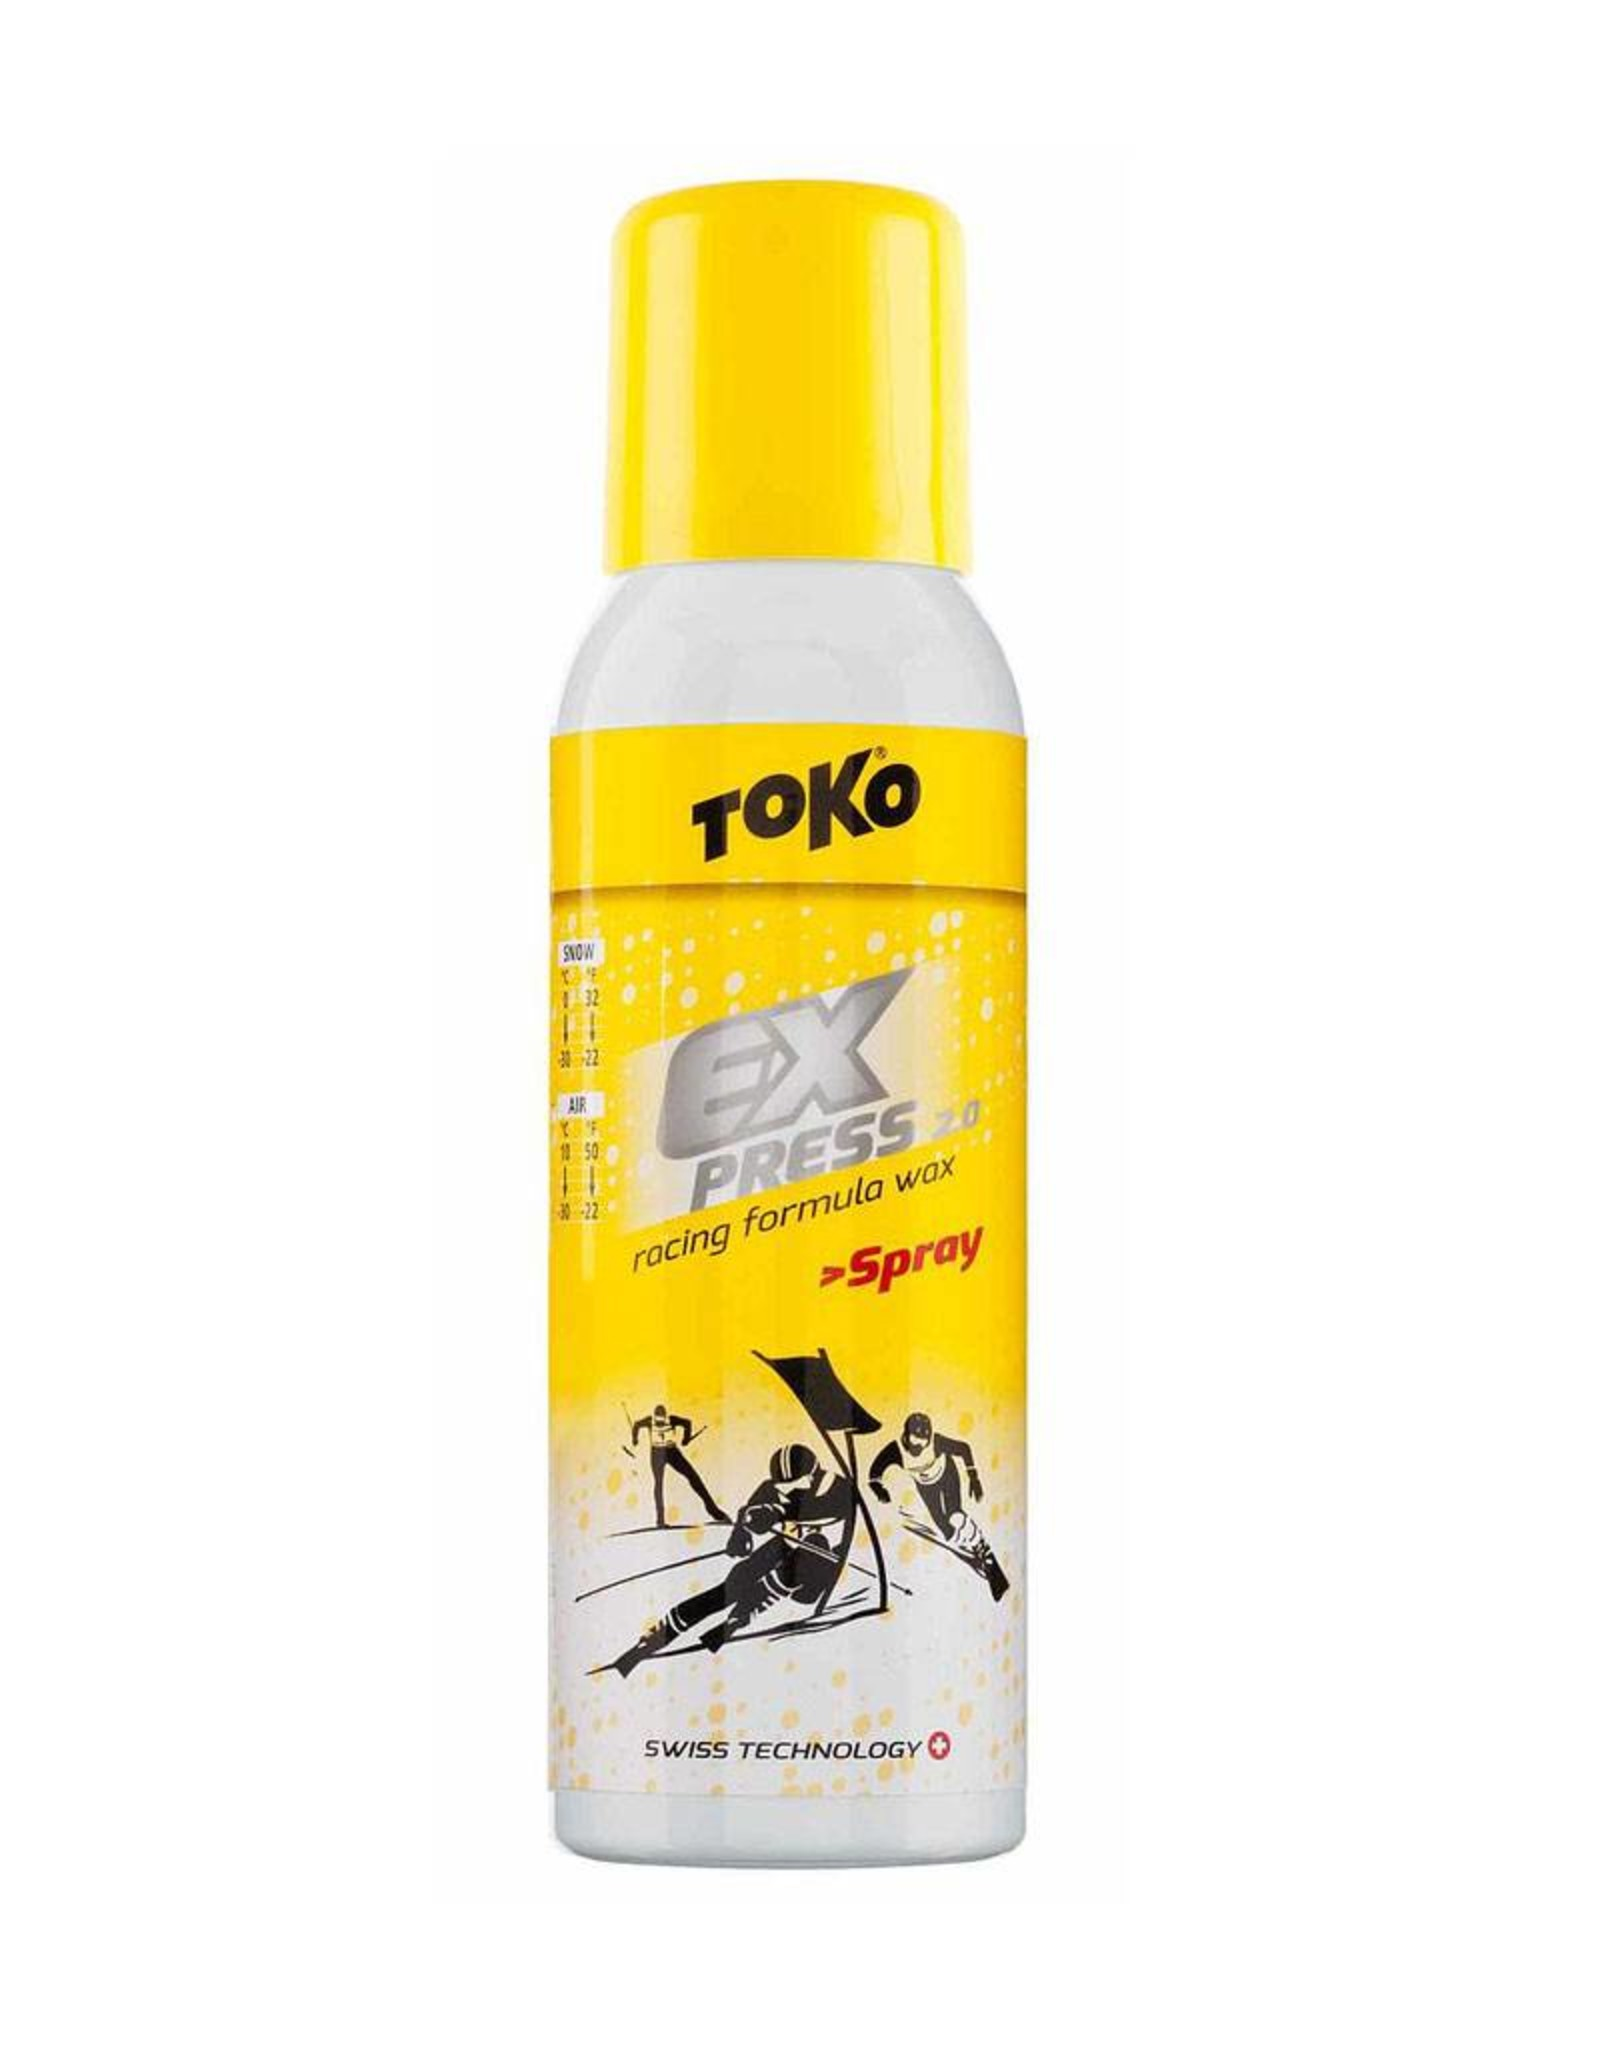 TOKO Toko Express Racing Spray 125ml (0 °C / -30 °C)